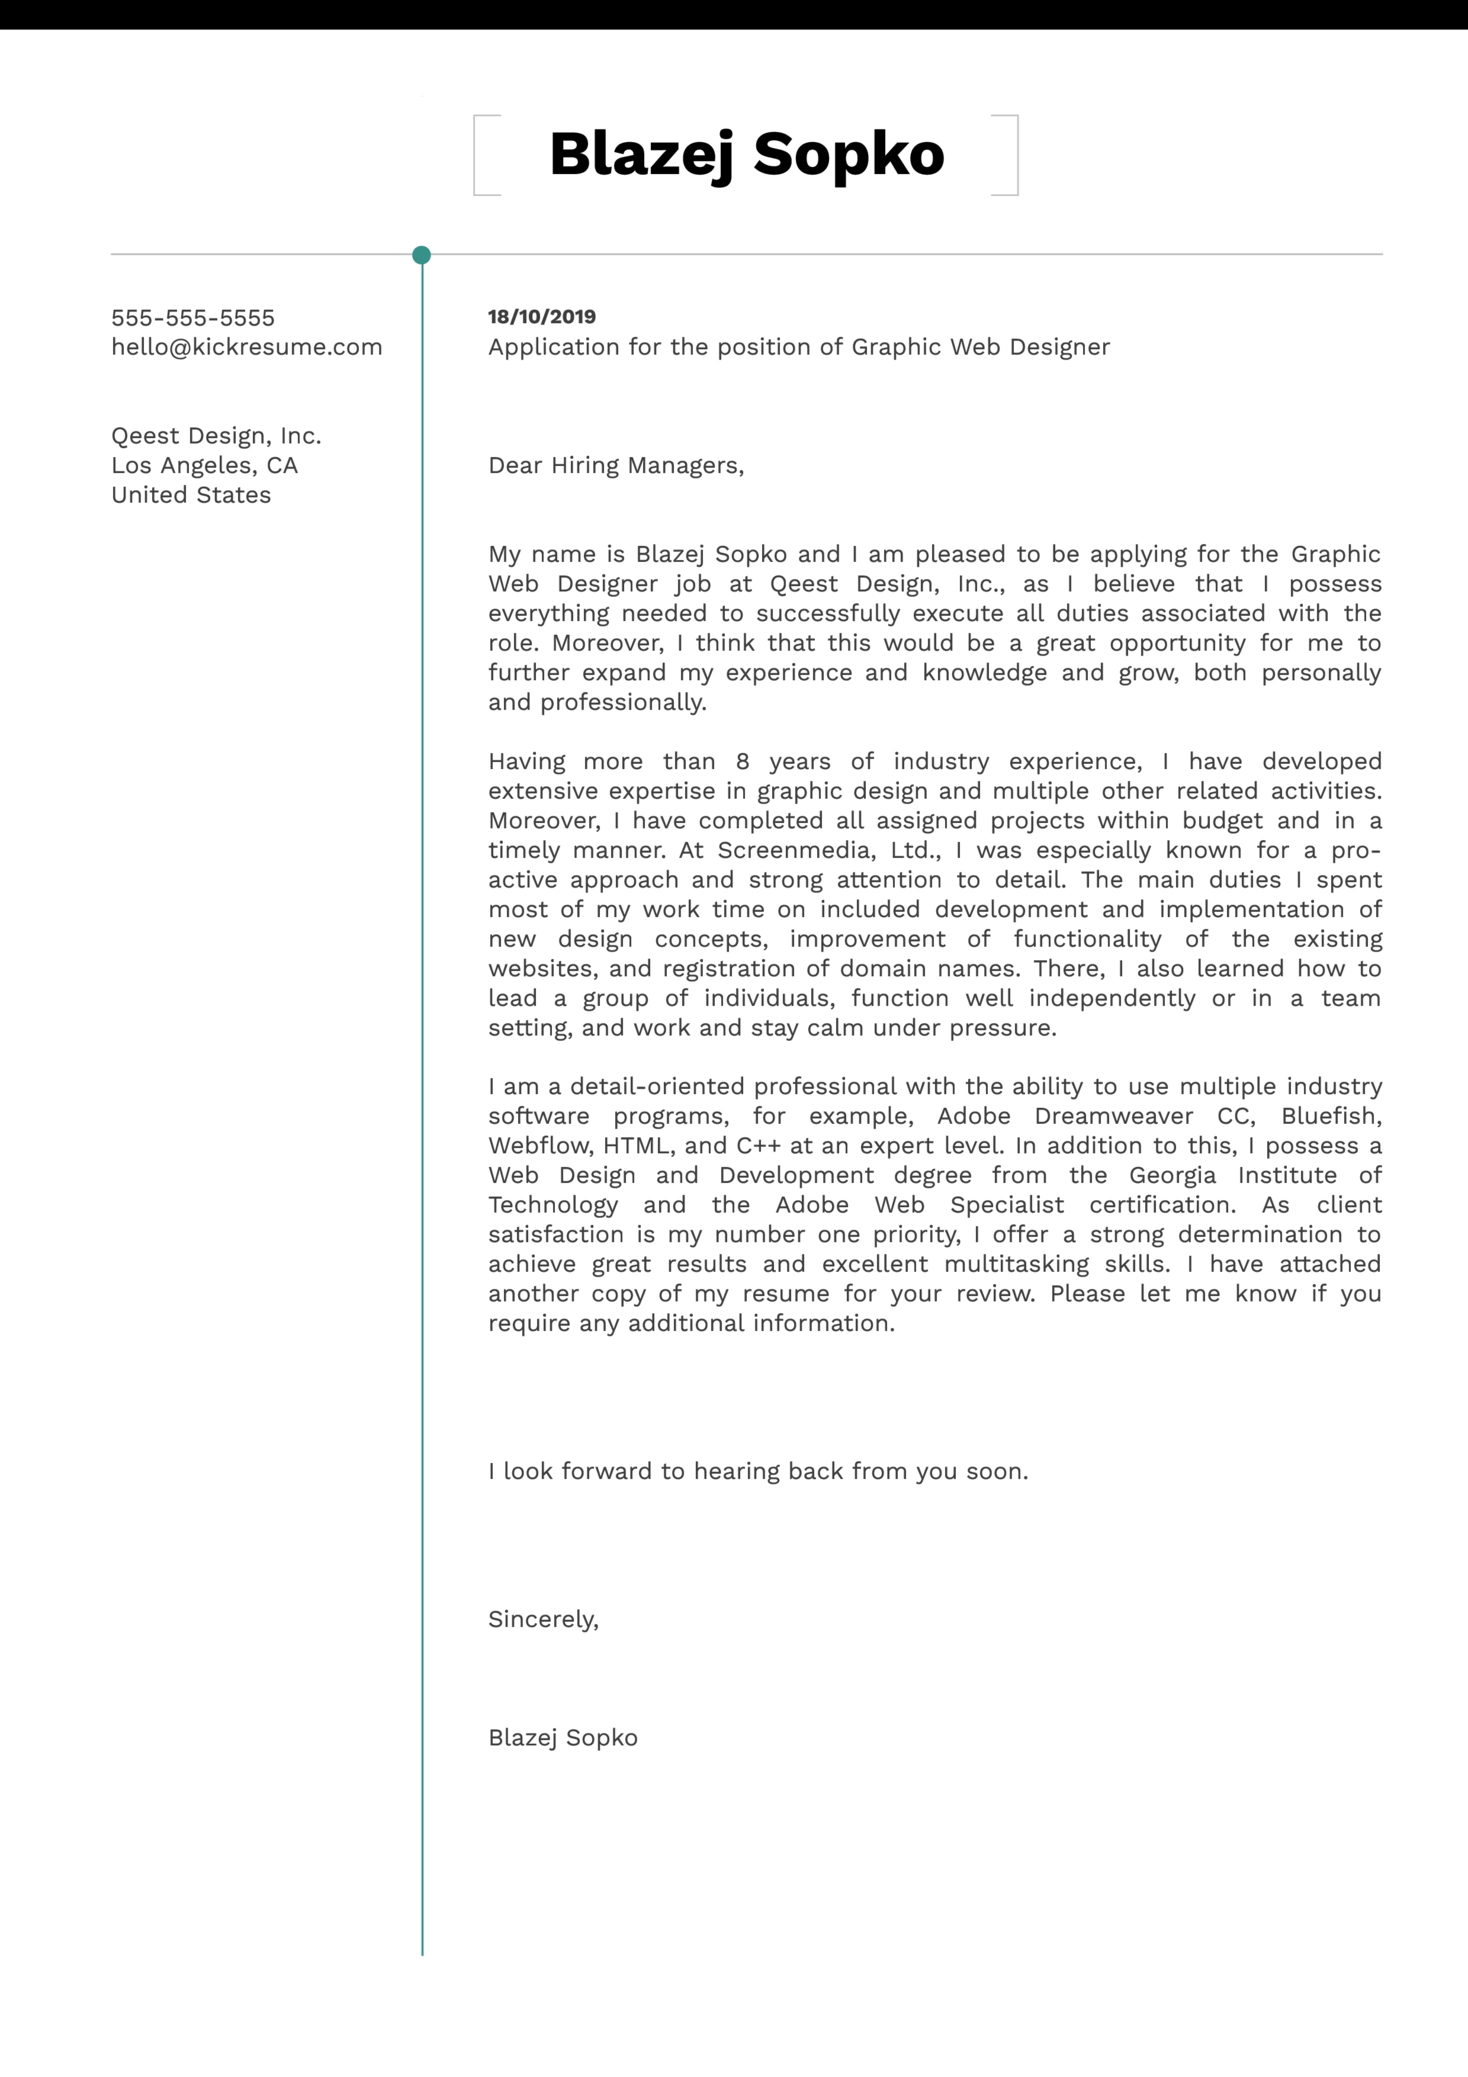 Graphic Web Designer Cover Letter Example Kickresume